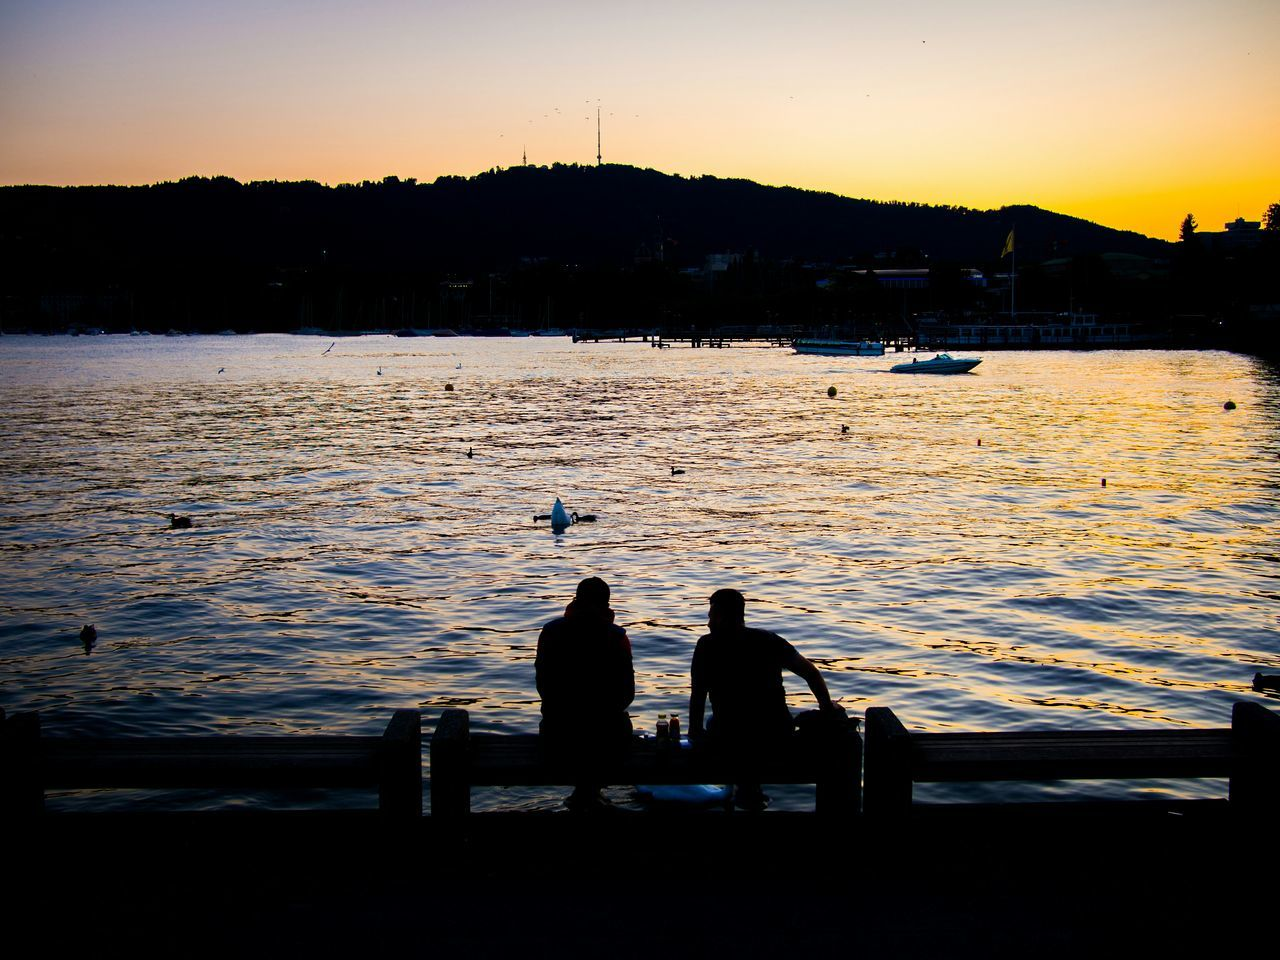 Re-edit Glitch Deceptively Simple Dawn Zürichsee Zurich, Switzerland Streetphotography Lake Silhouettes Sunset Capture The Moment My Best Photo 2015